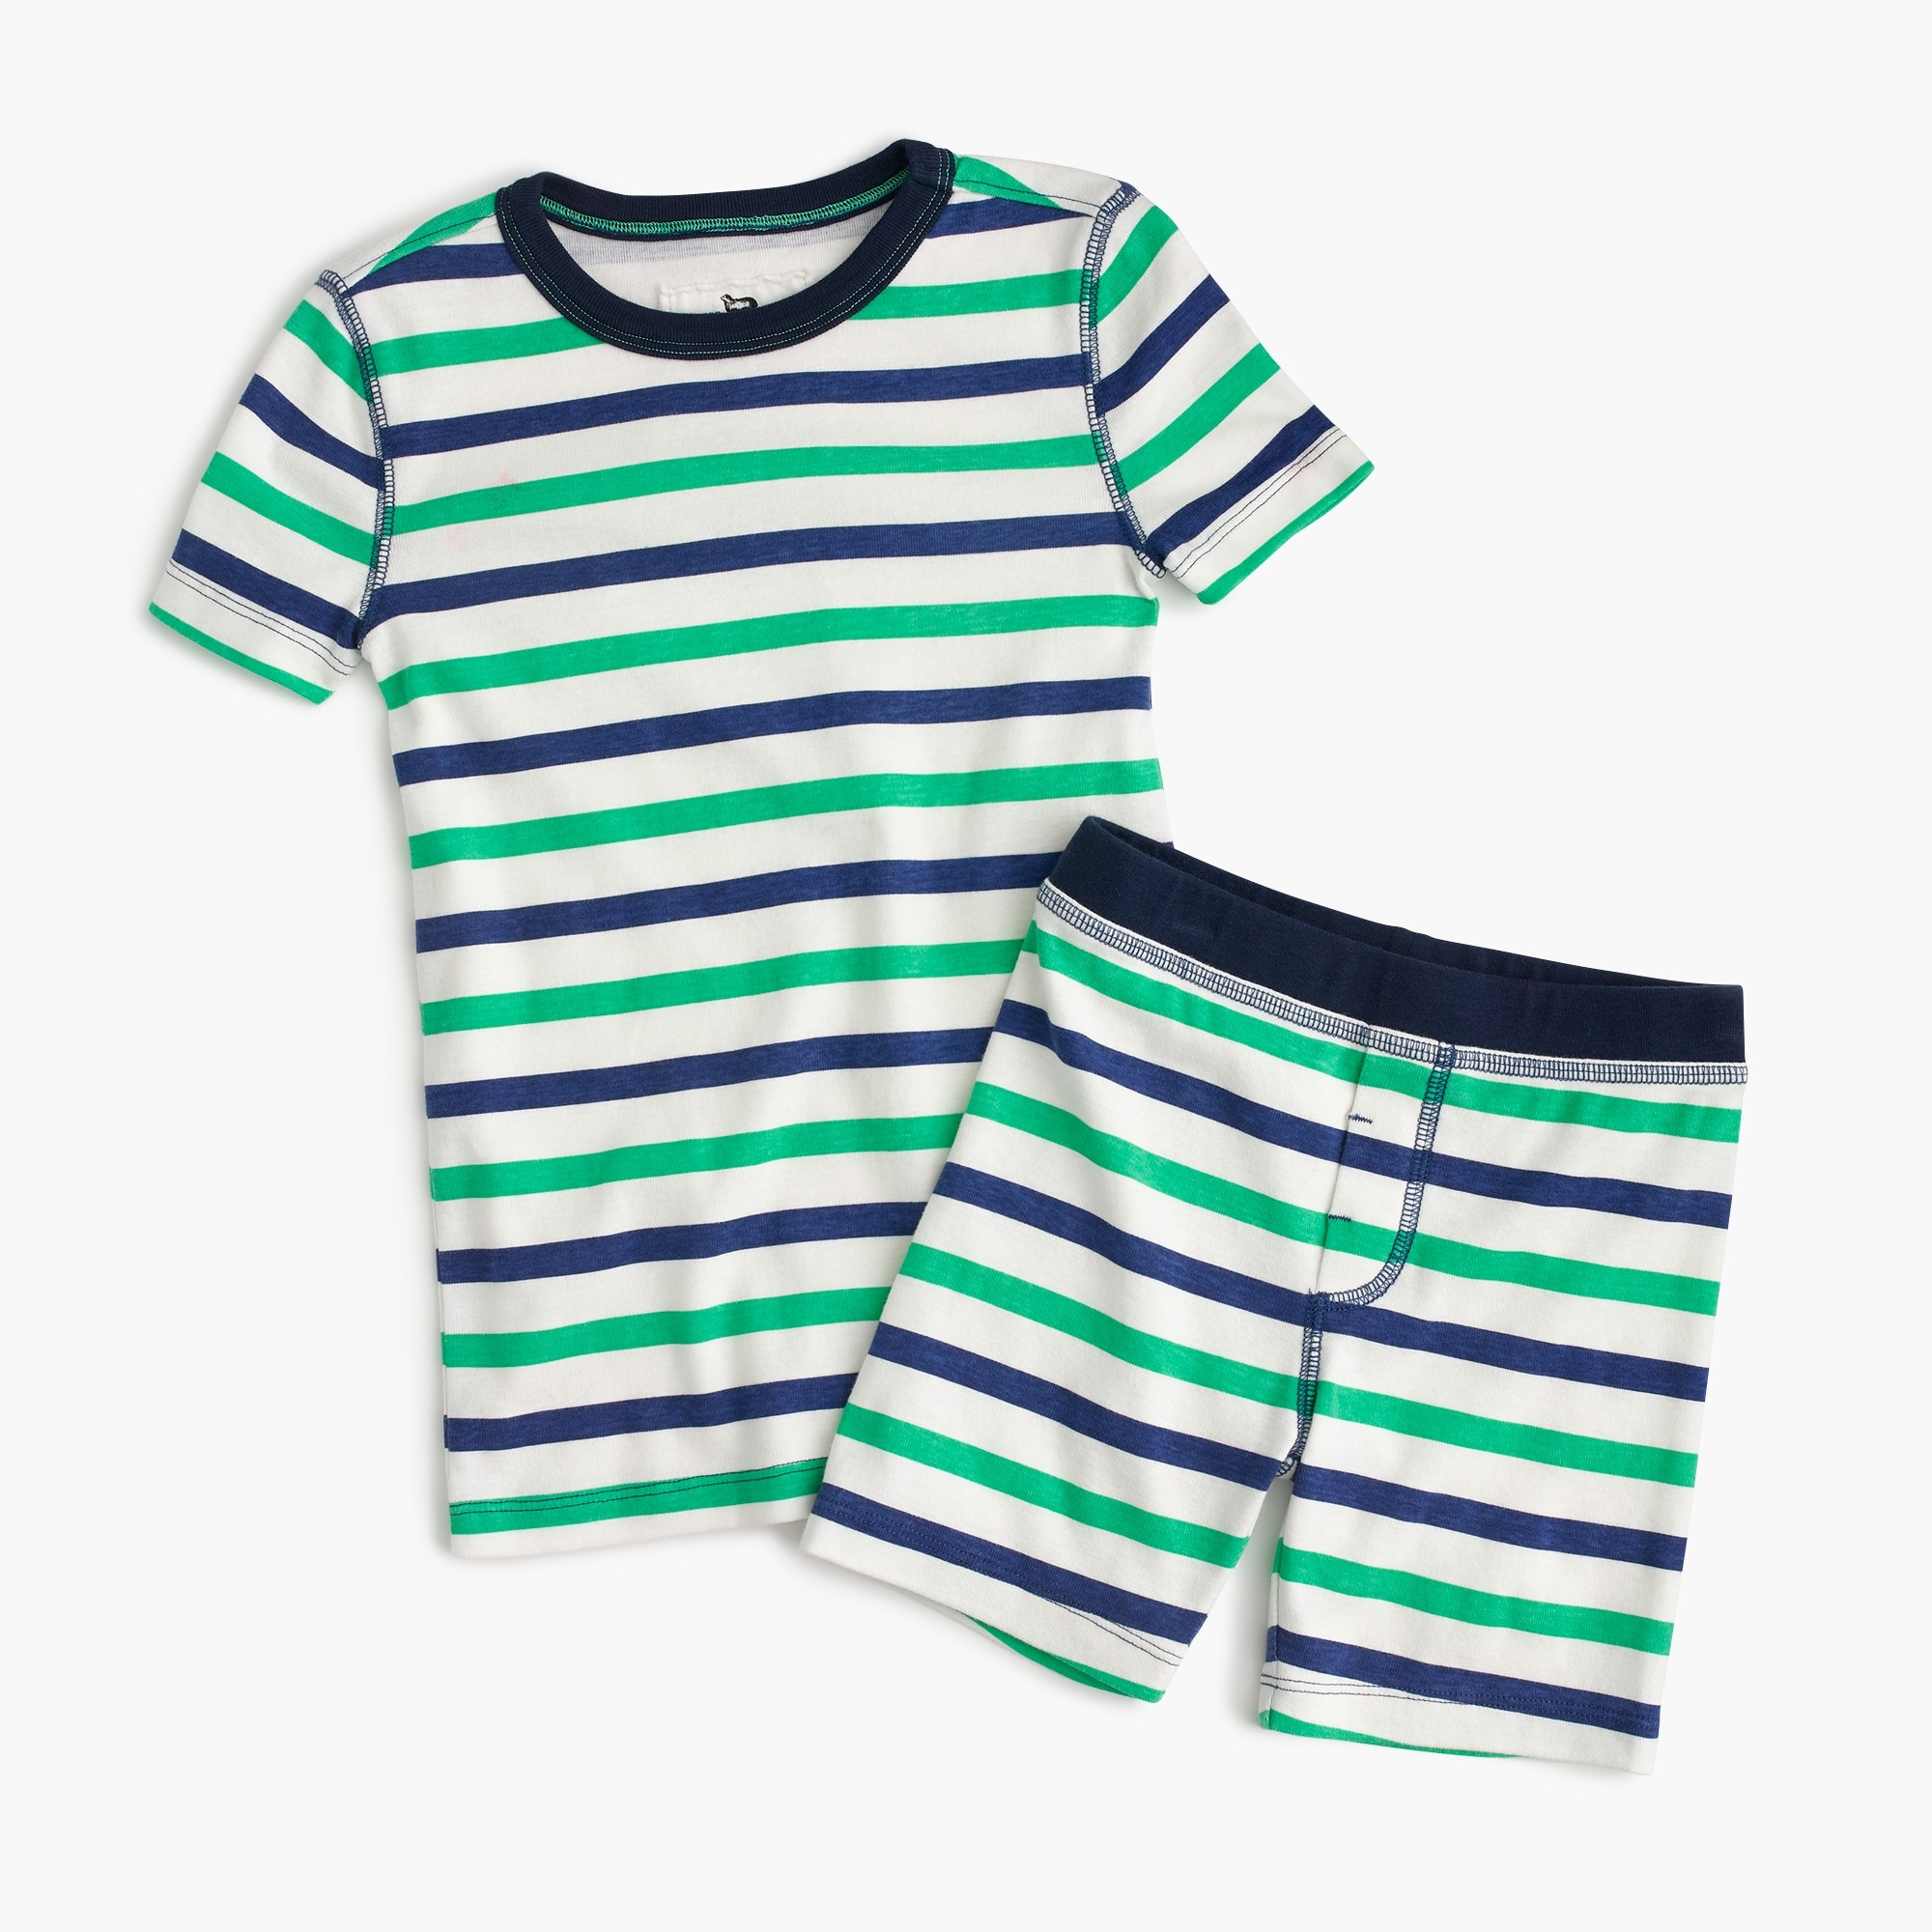 Kids' short pajama set in cabana stripes girl pajama shop c